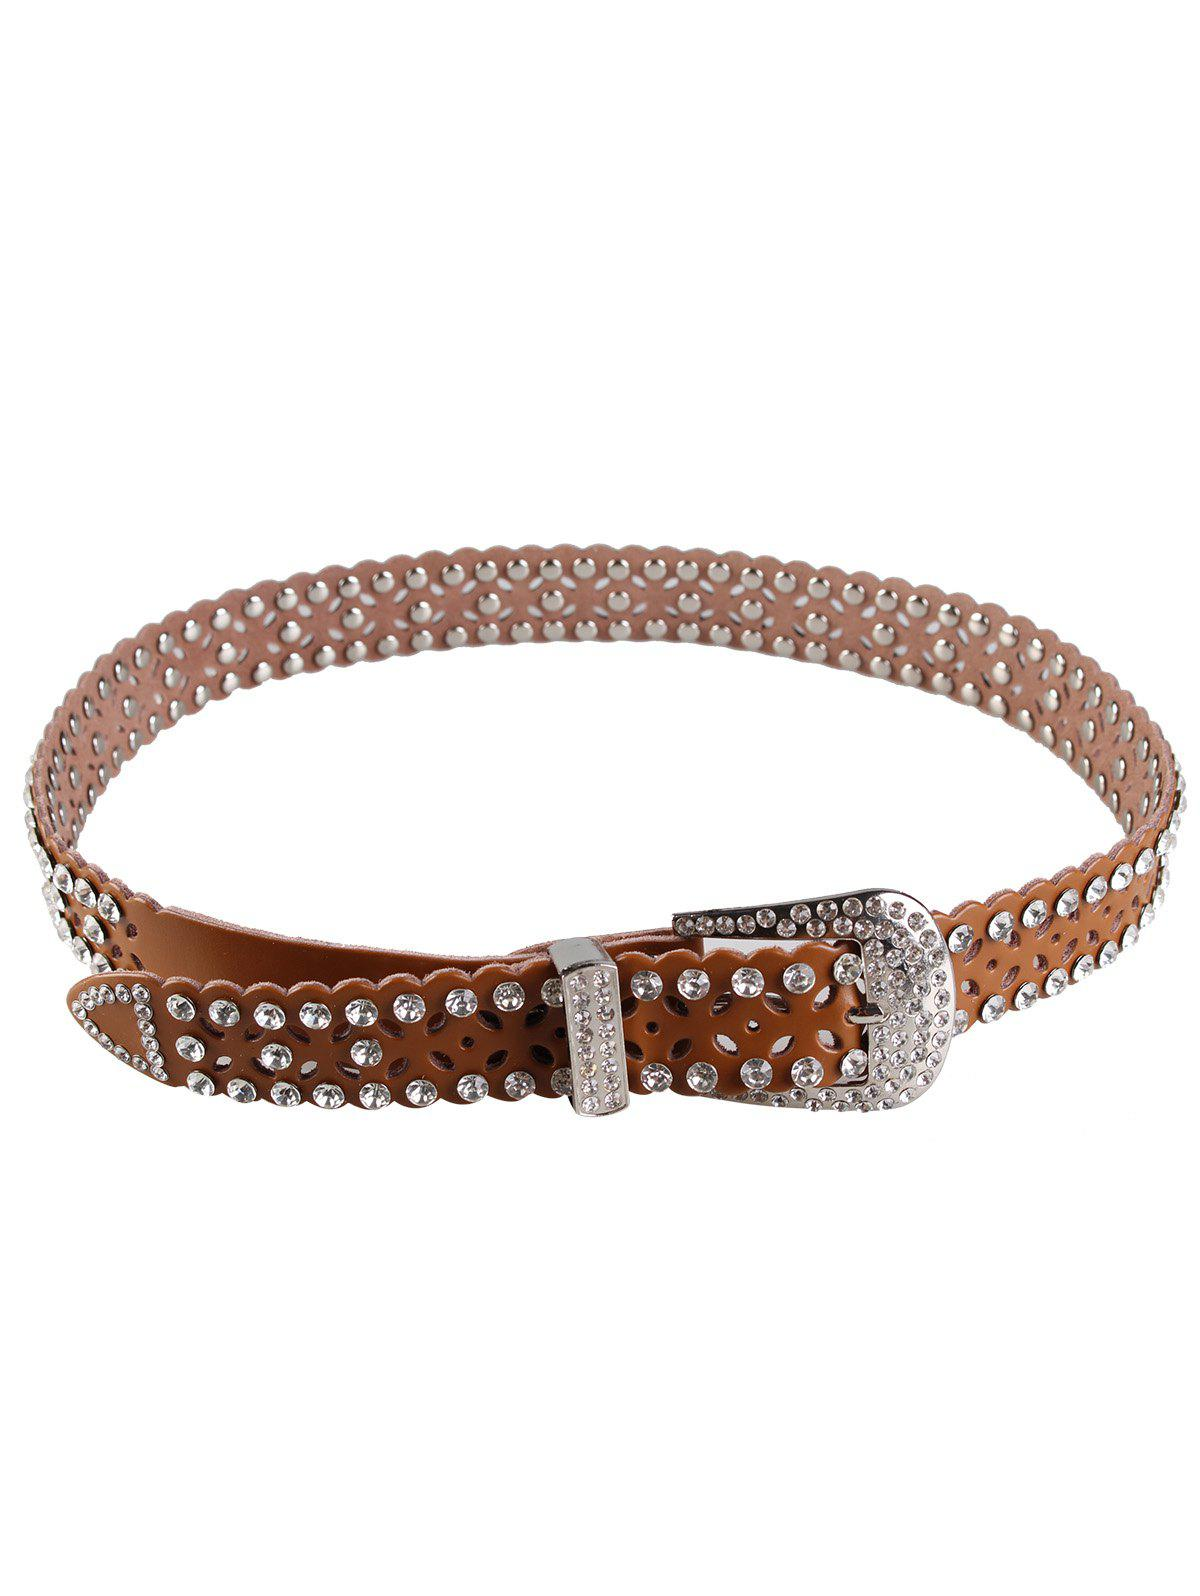 Rhinestone Hollow Out Embellished Waist Belt 250492701